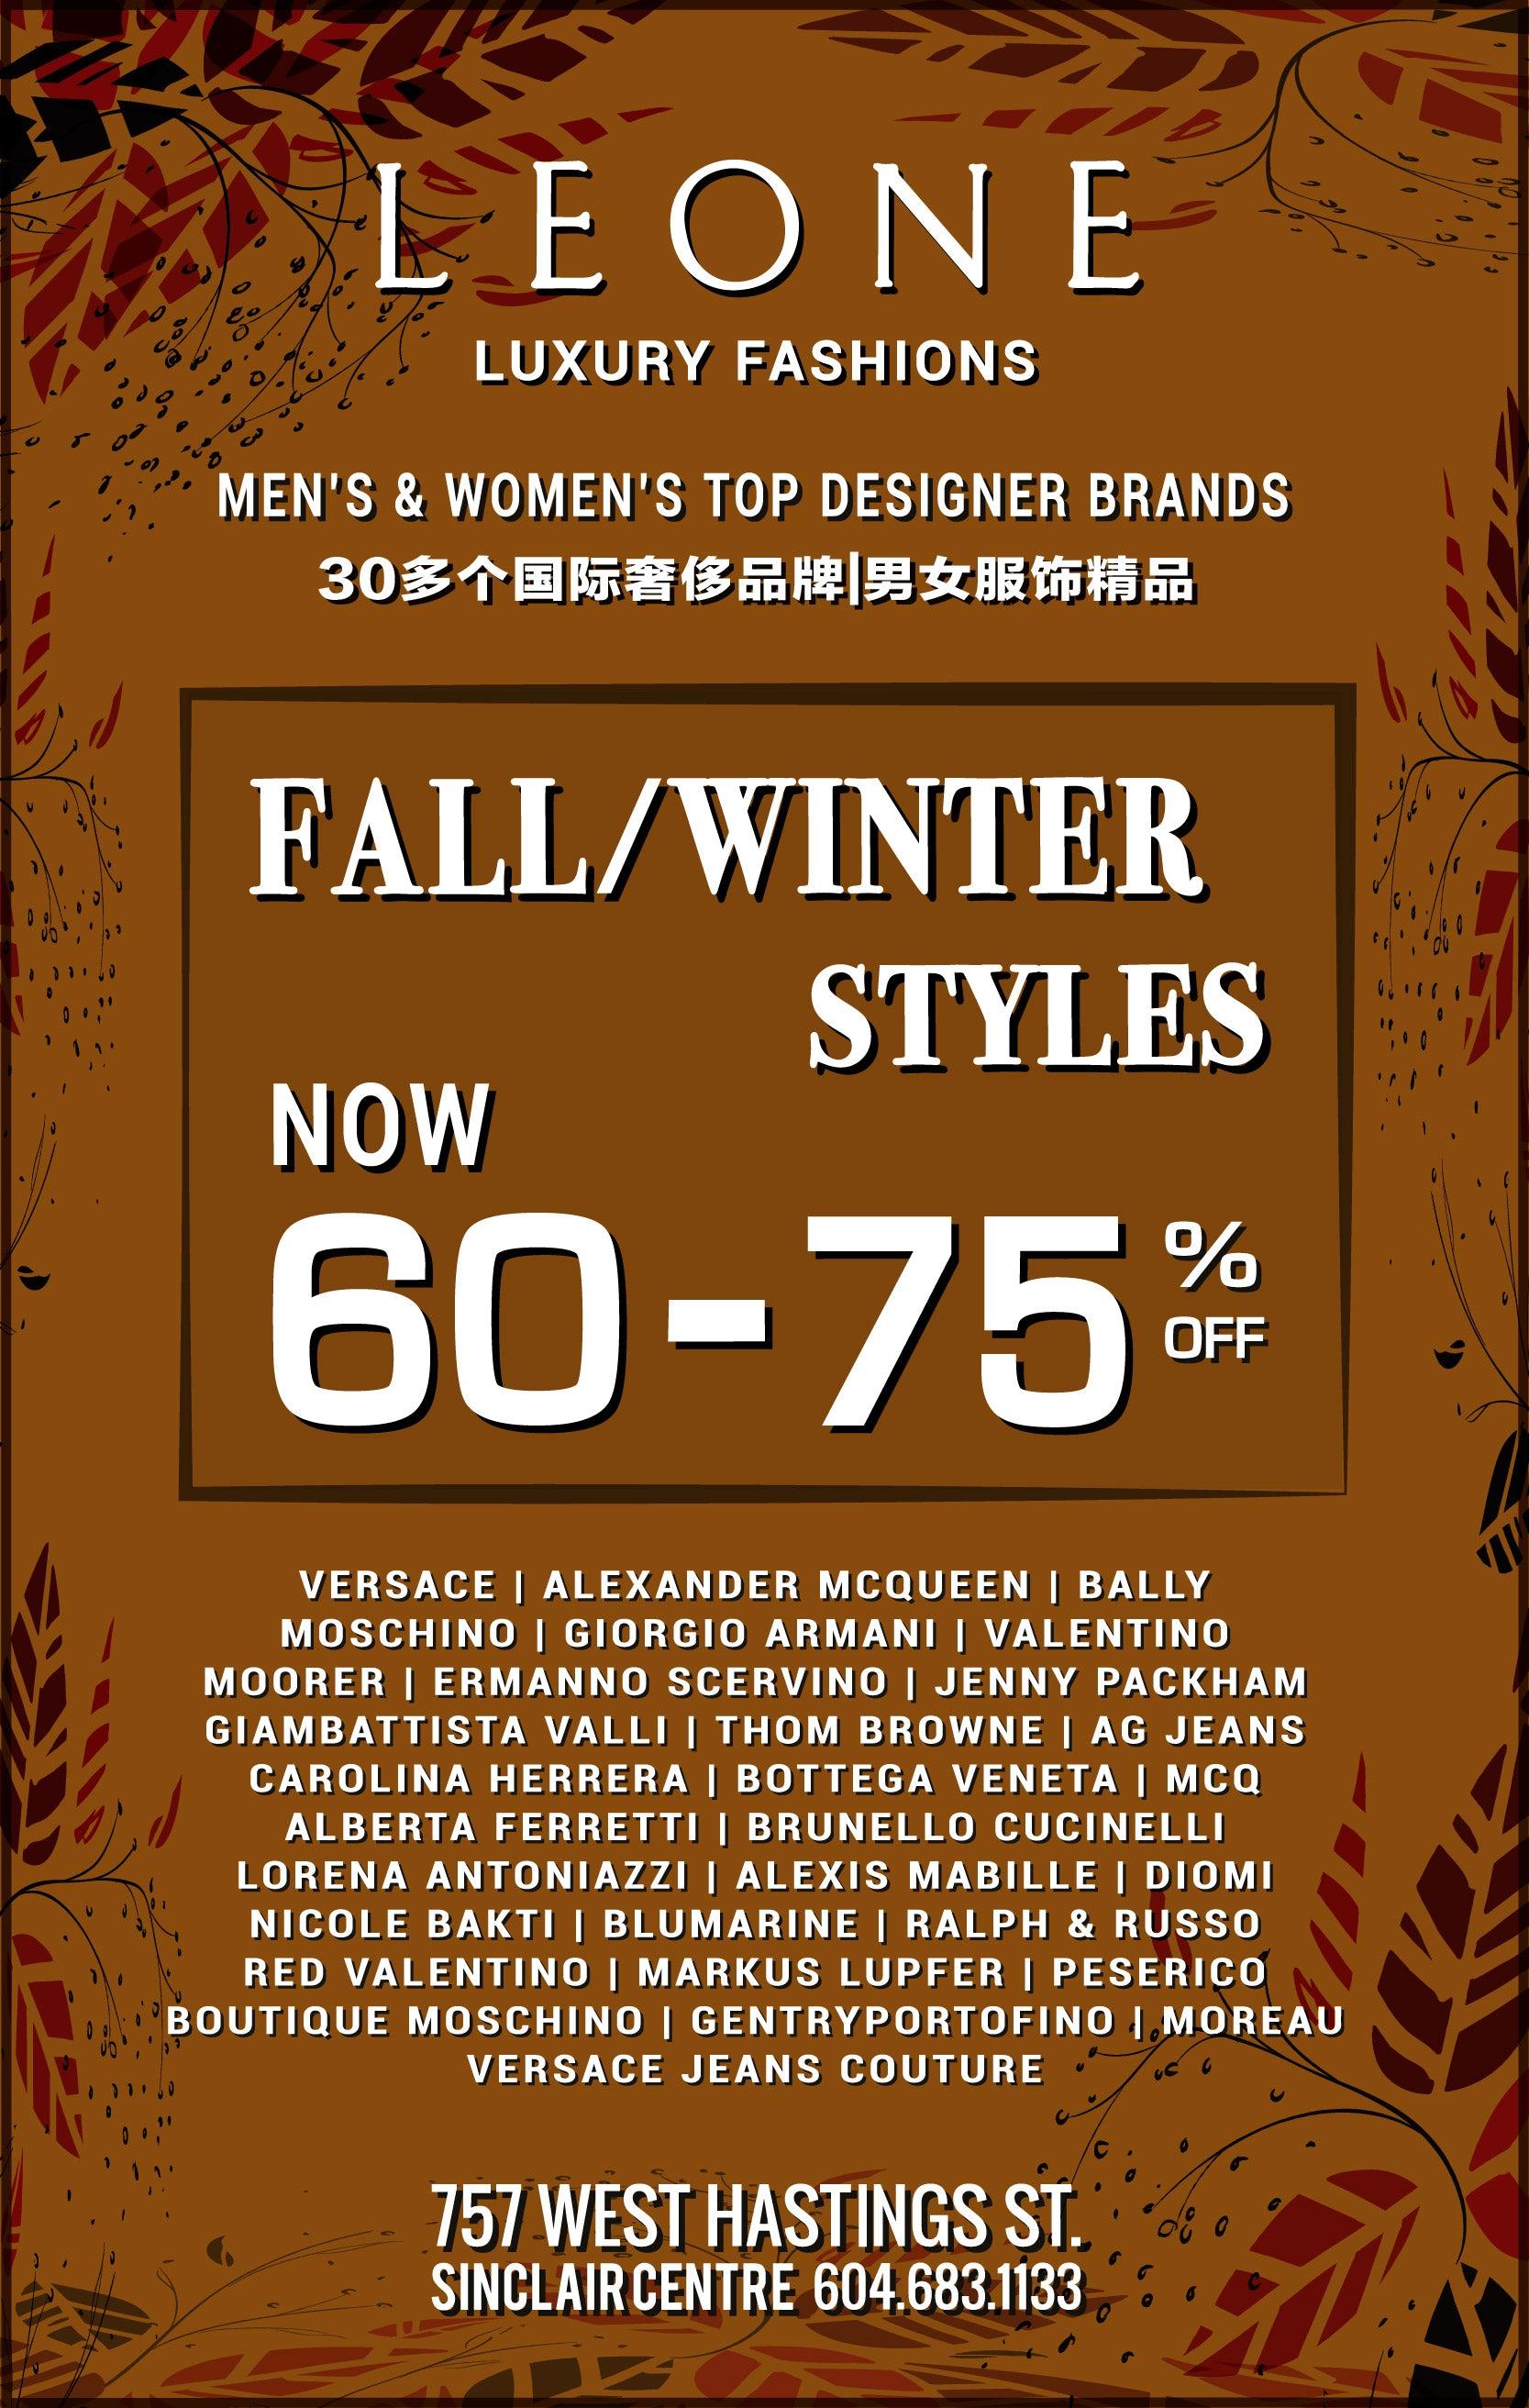 Fall Winter Styles now 60-75% Off